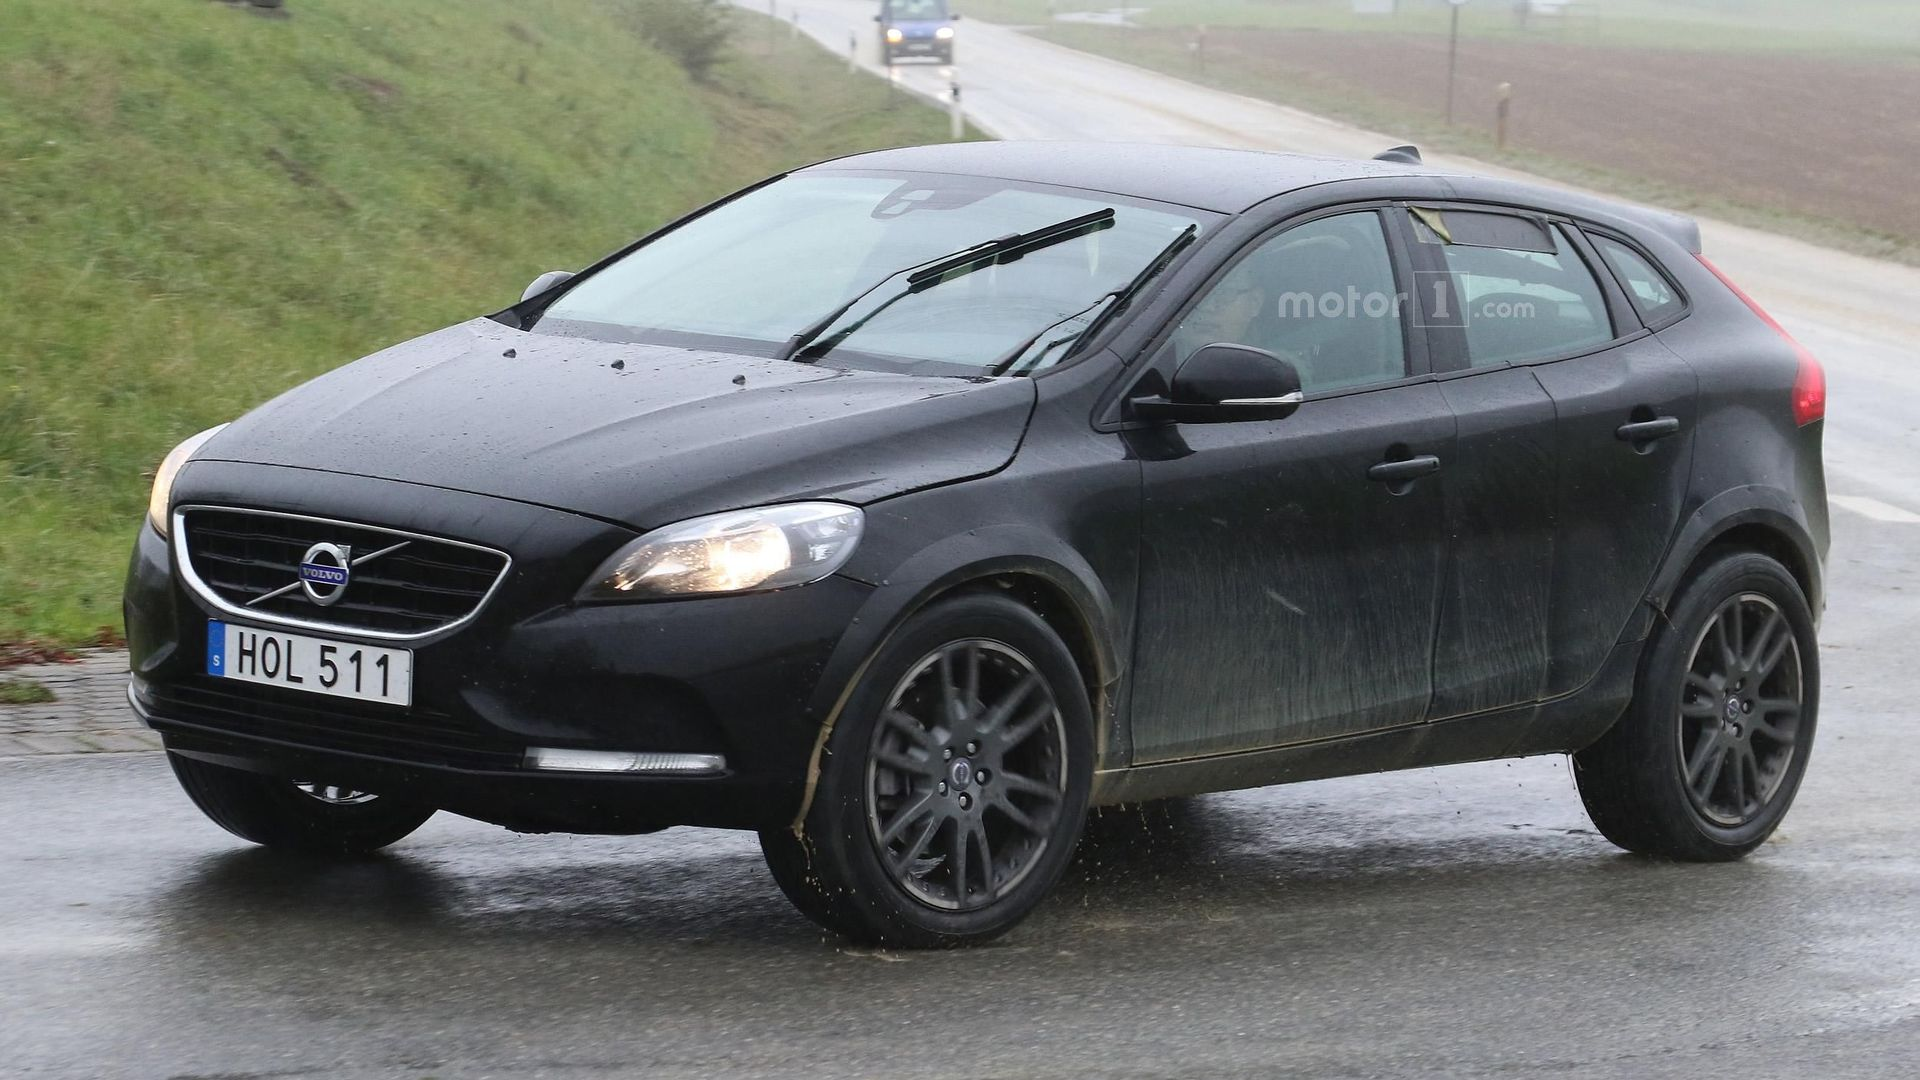 volvo xc40 spotted disguised as jacked up v40. Black Bedroom Furniture Sets. Home Design Ideas